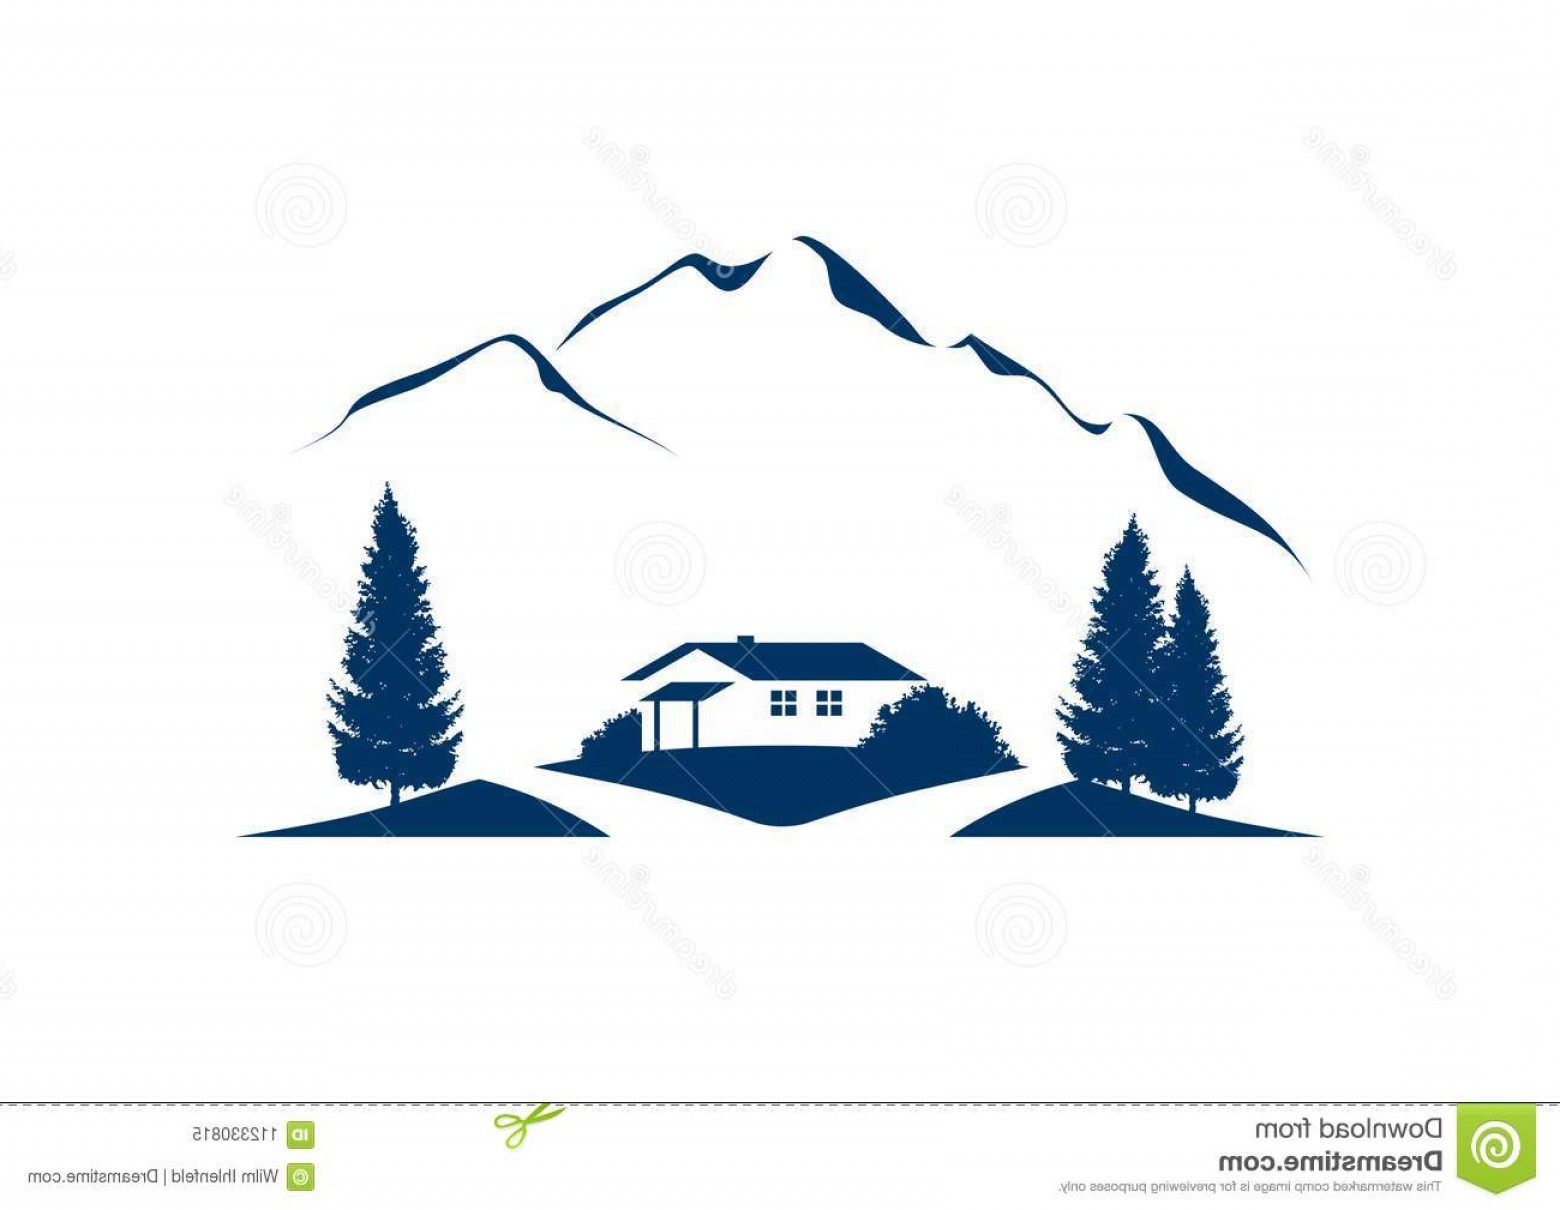 Vector Art Mountains Trees Colorado: Mountain Landscape Vector Icon Cottage Trees Rural Illustration Firs Image